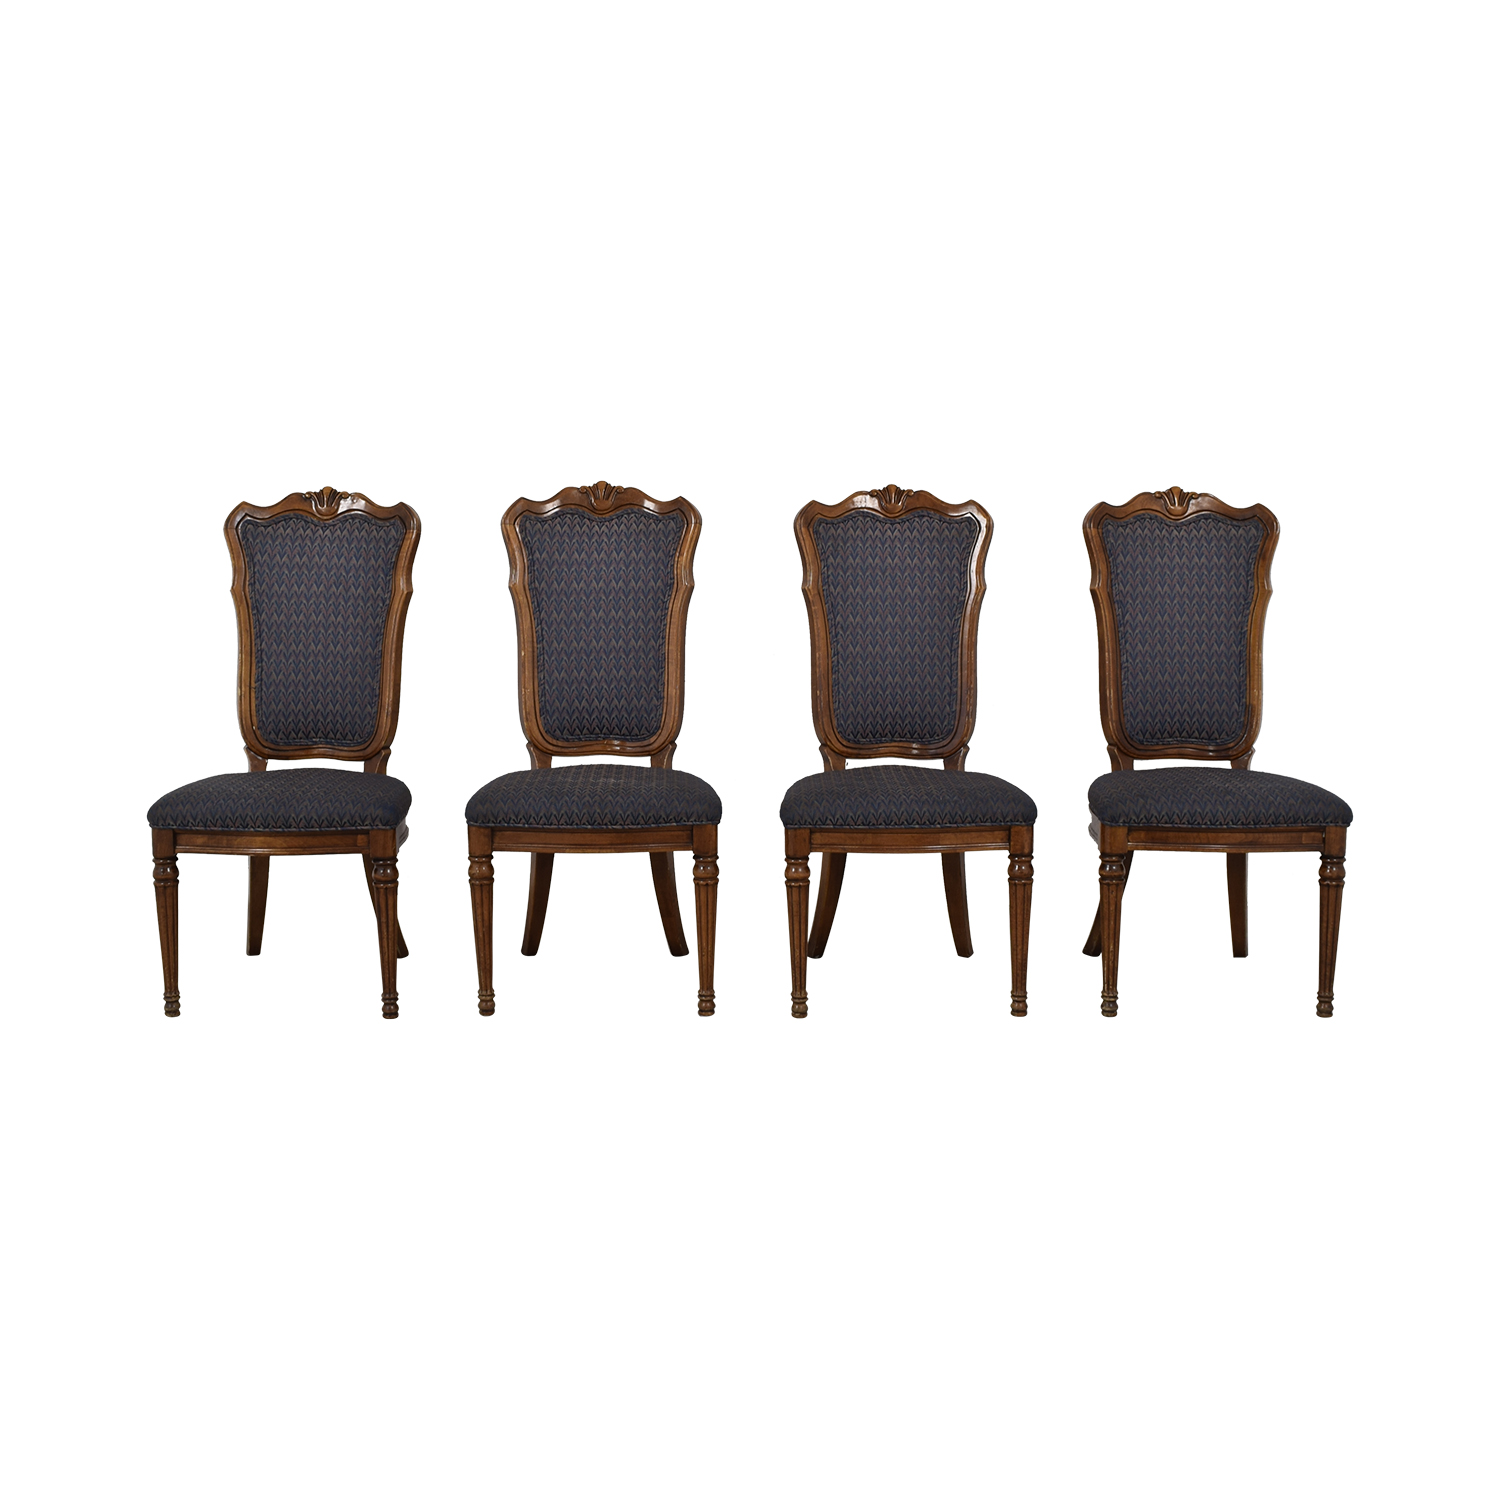 Multi-Colored Navy Dining Chairs Multi colored